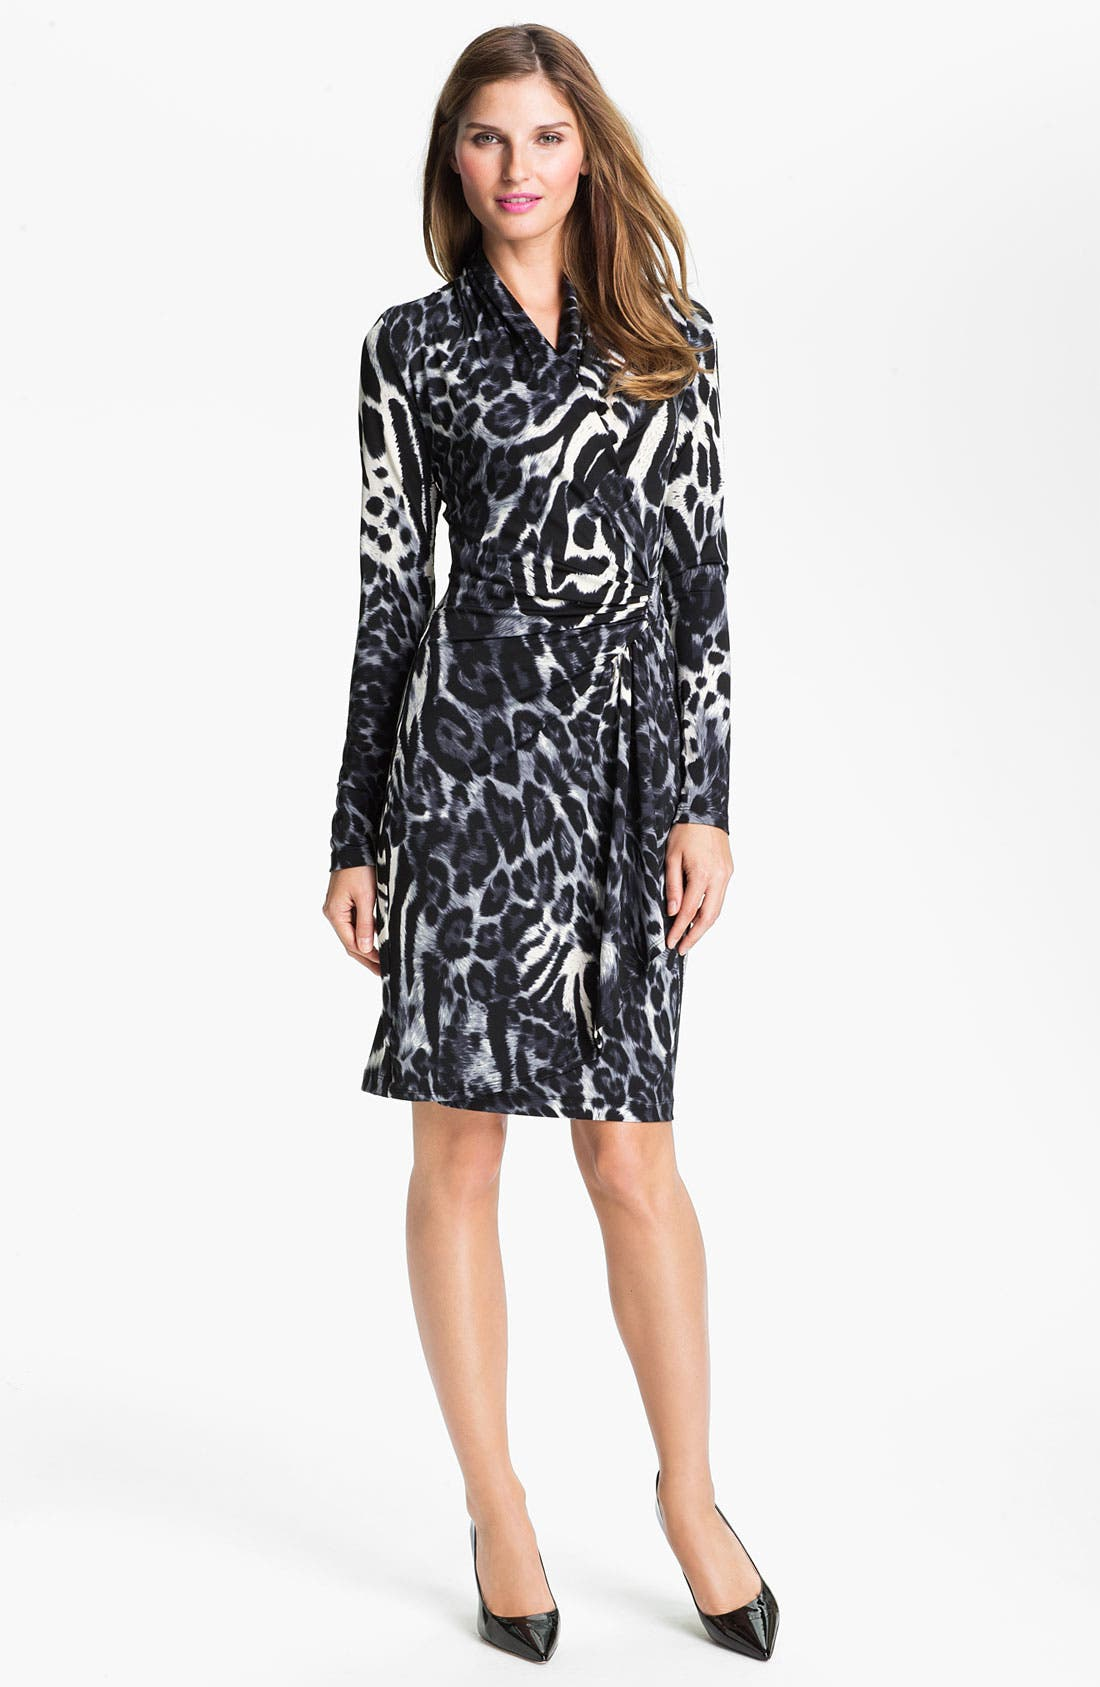 Alternate Image 1 Selected - Karen Kane Faux Wrap Dress (Online Exclusive)